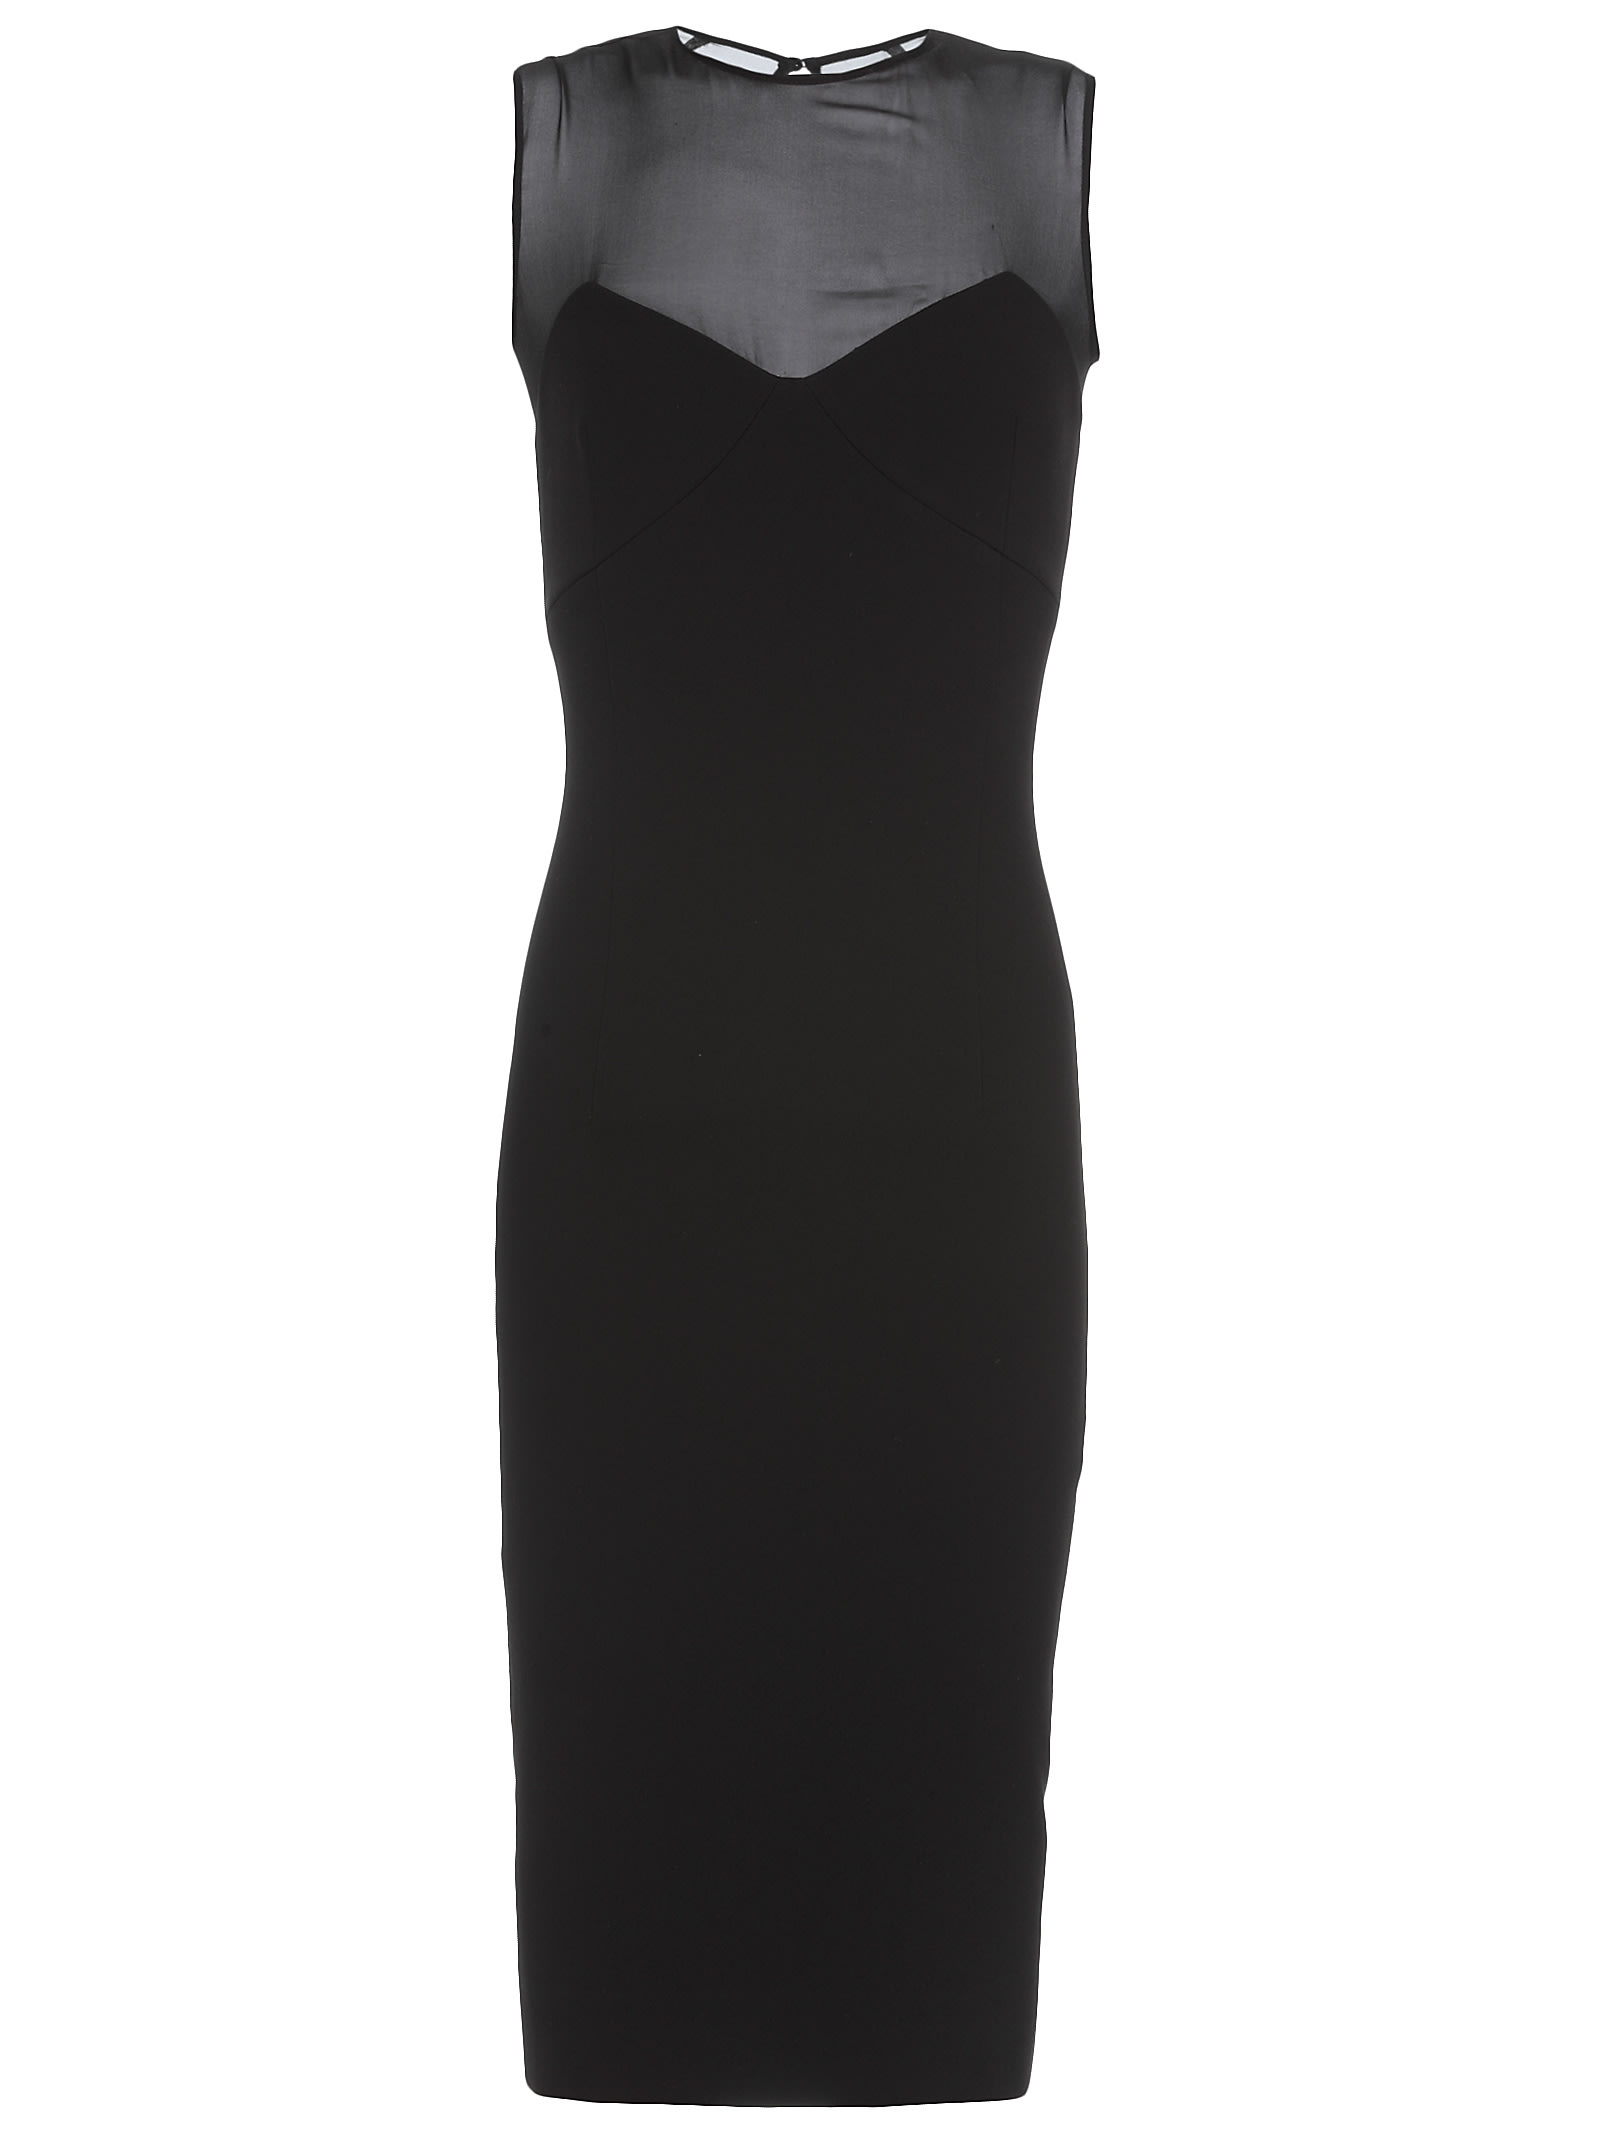 Victoria Beckham Plain Color Pencil Dress